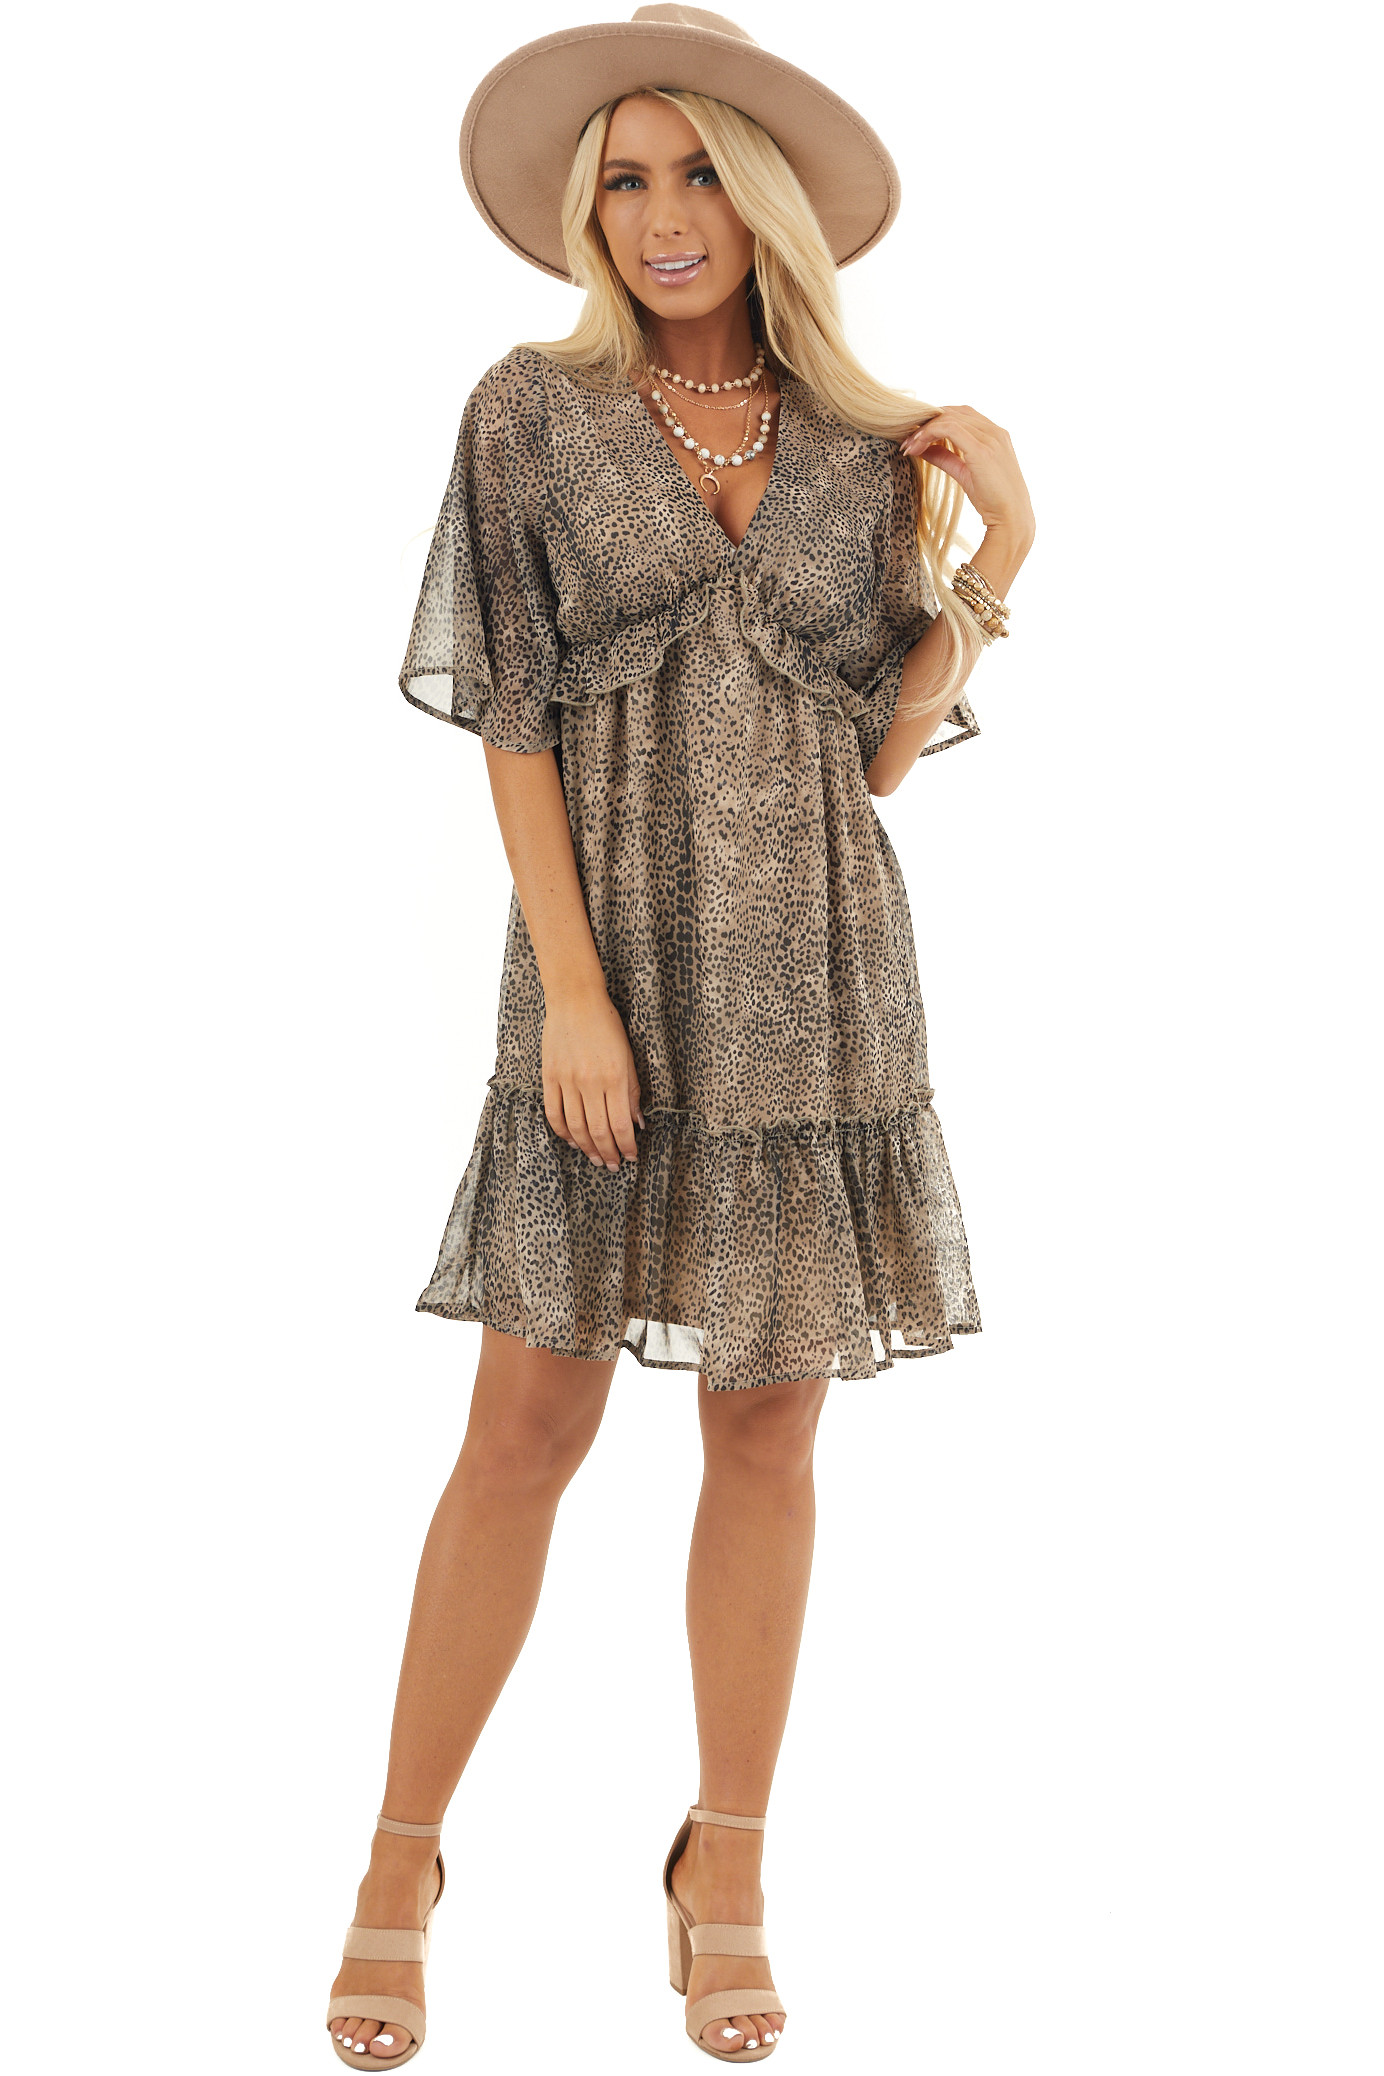 Taupe Cheetah Print Short Sleeve Dress with Ruffle Details